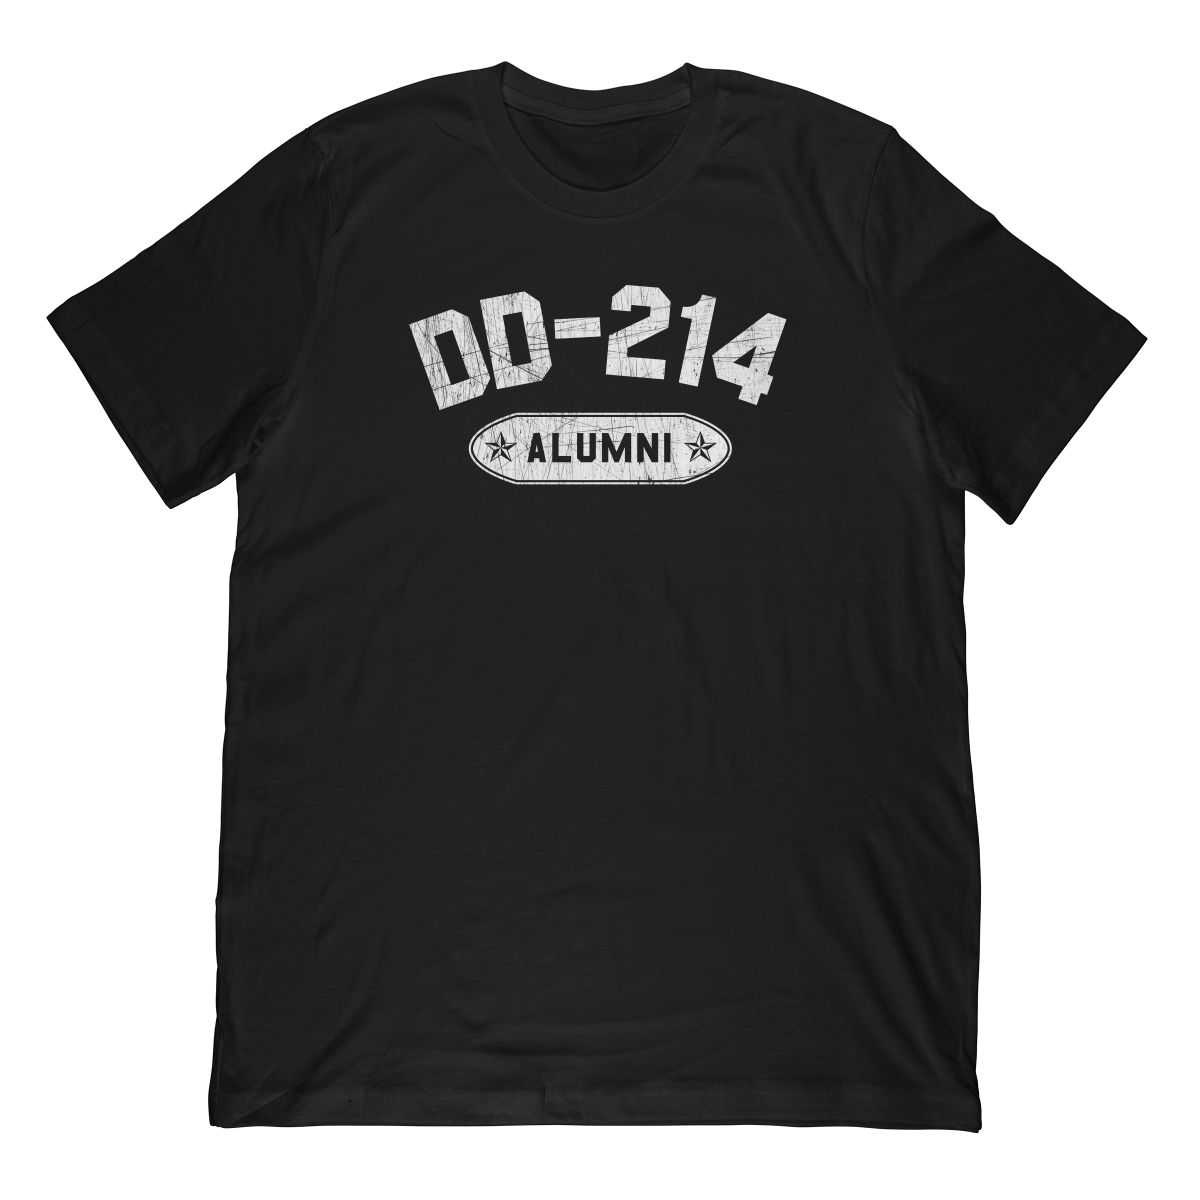 DD-214 Alumni In White (Stamp Look) T-Shirt